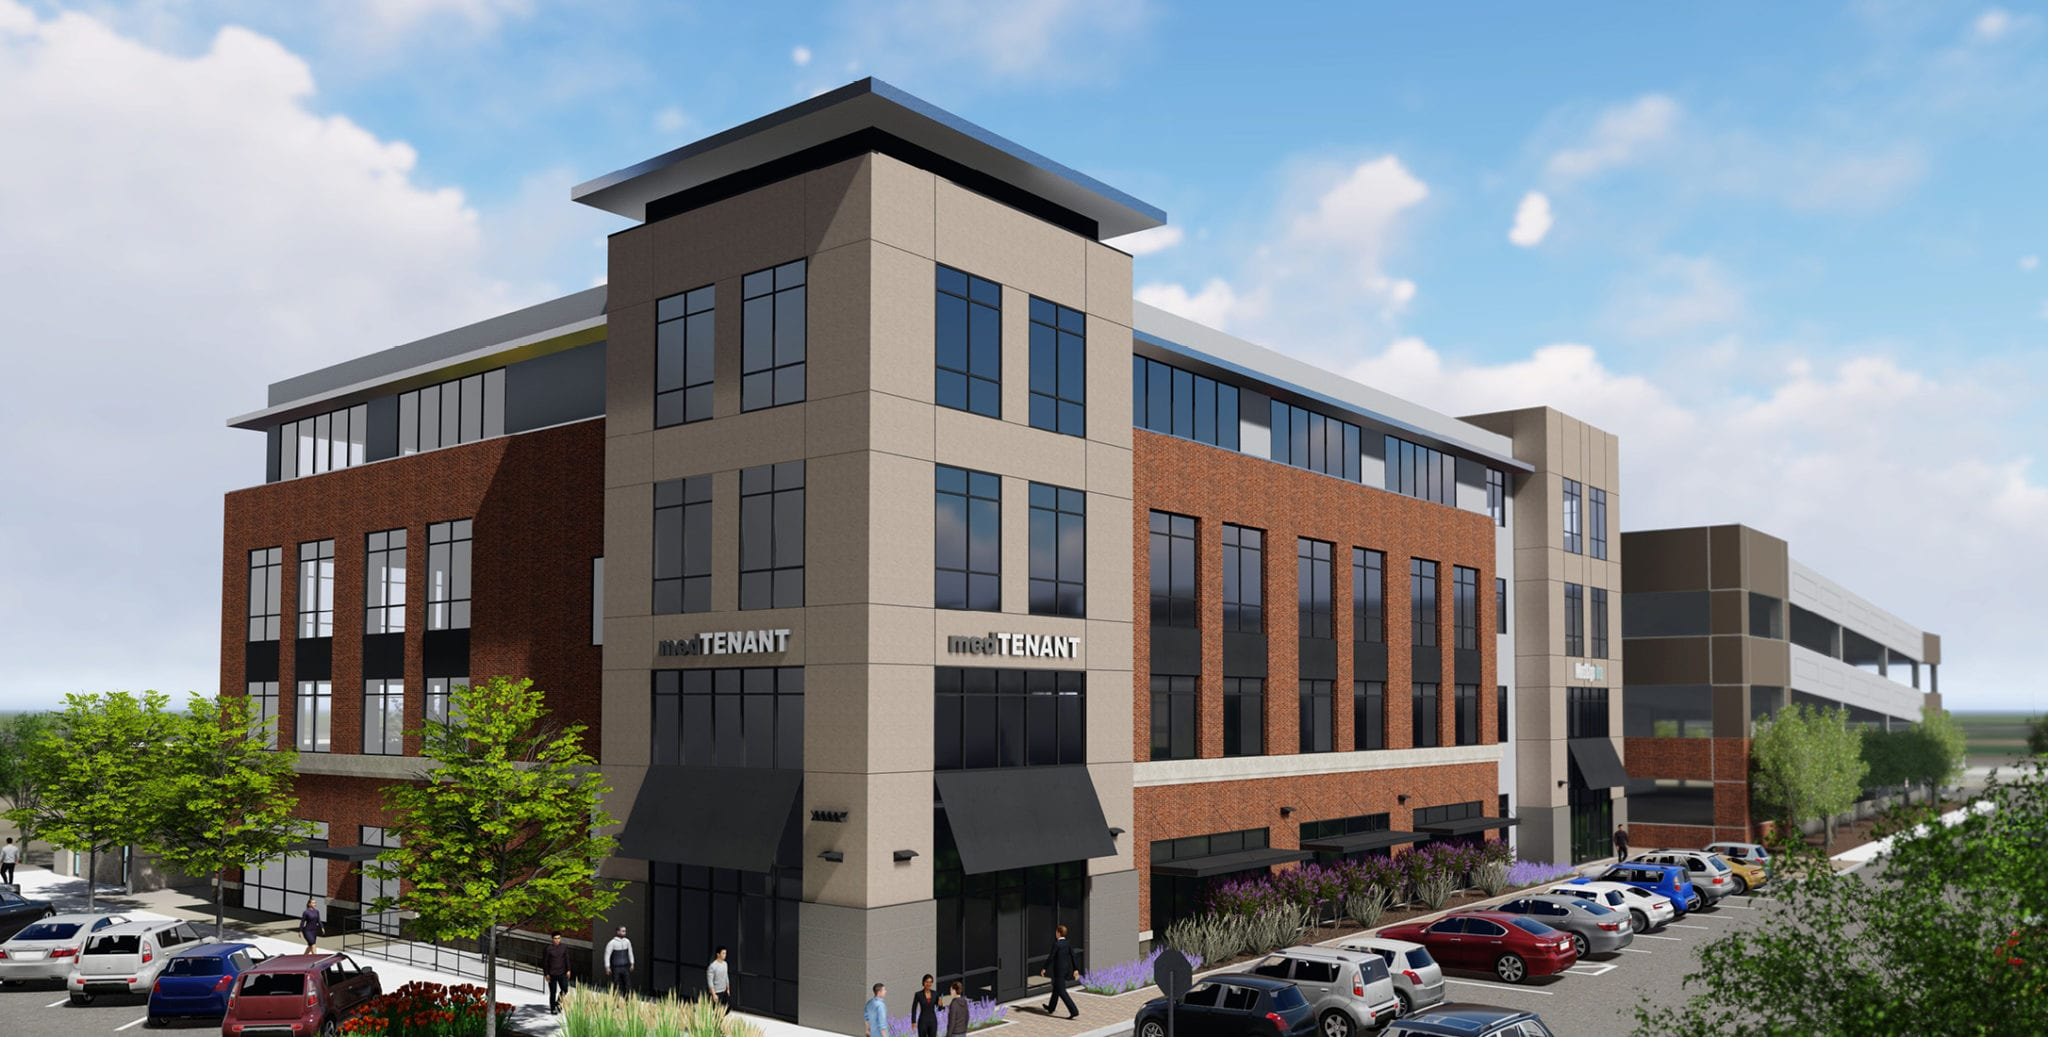 Sawtooth development group broke ground april 4 on superior medical a four story 60000 square foot multitenant medical office building at three superior